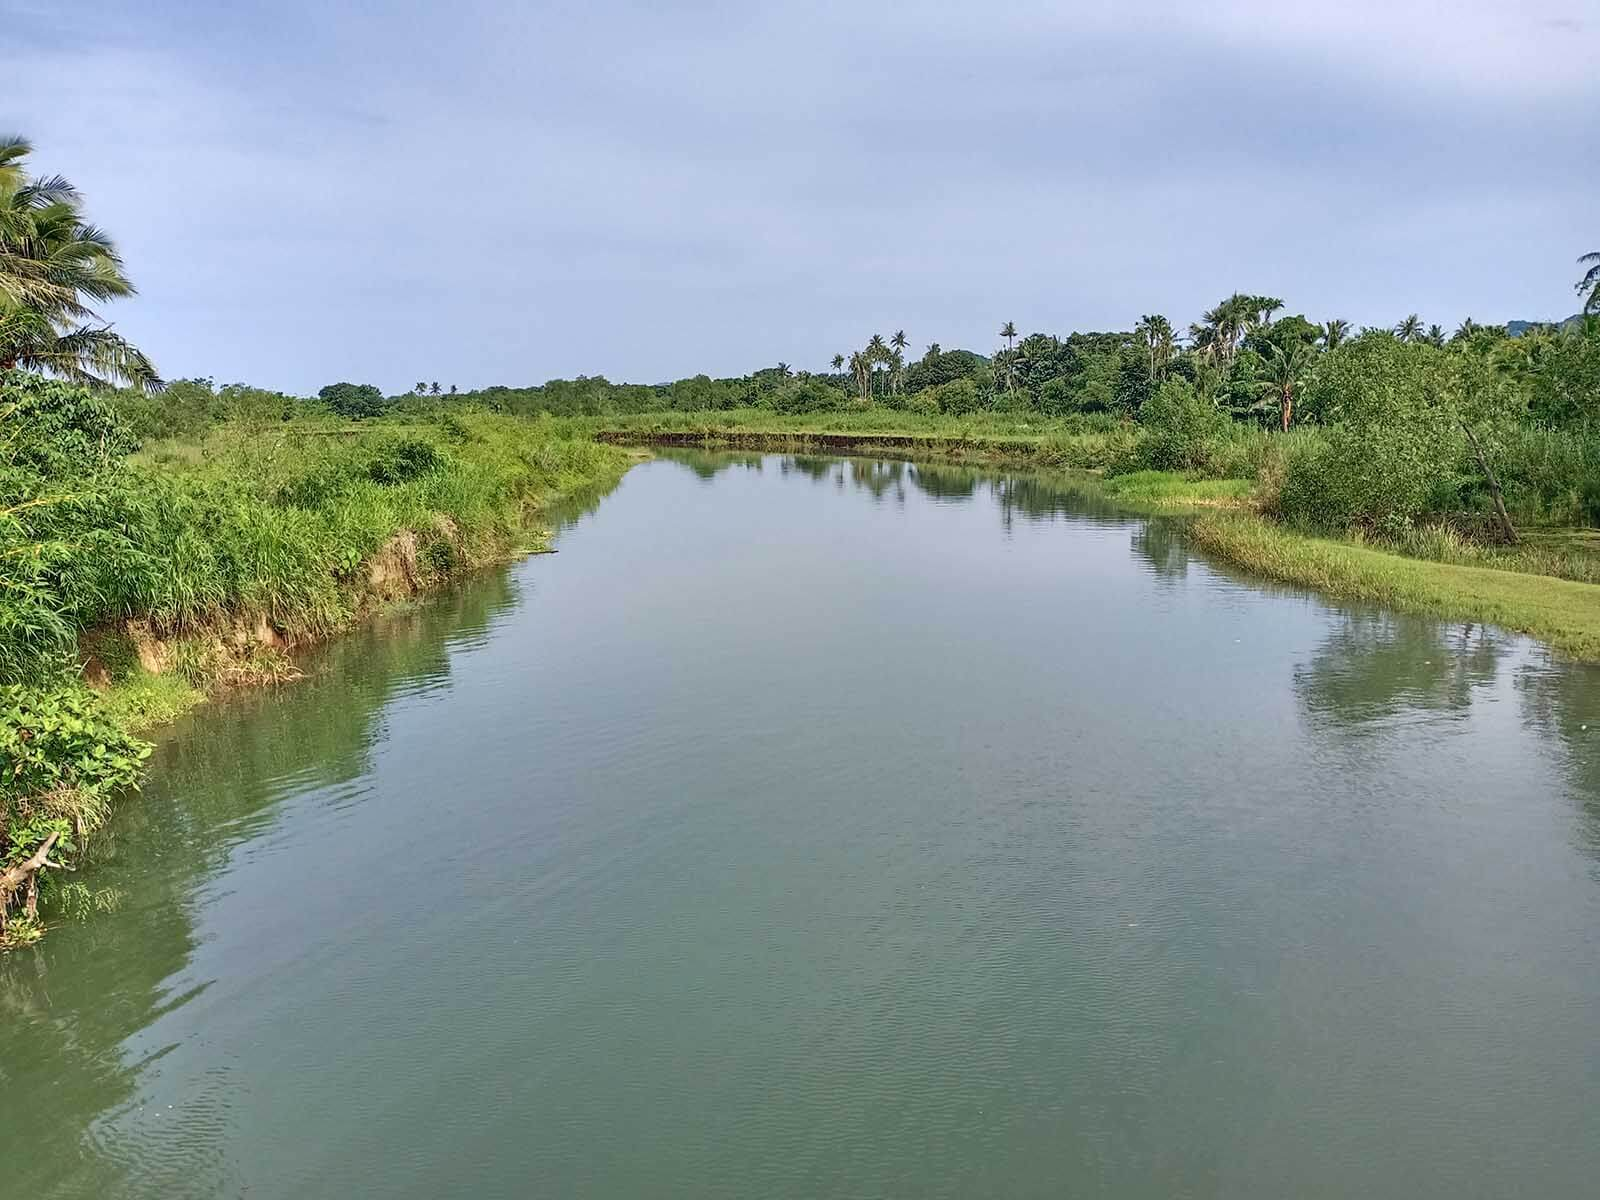 Santa Ana Cagayan Travel Guide - Casagan River